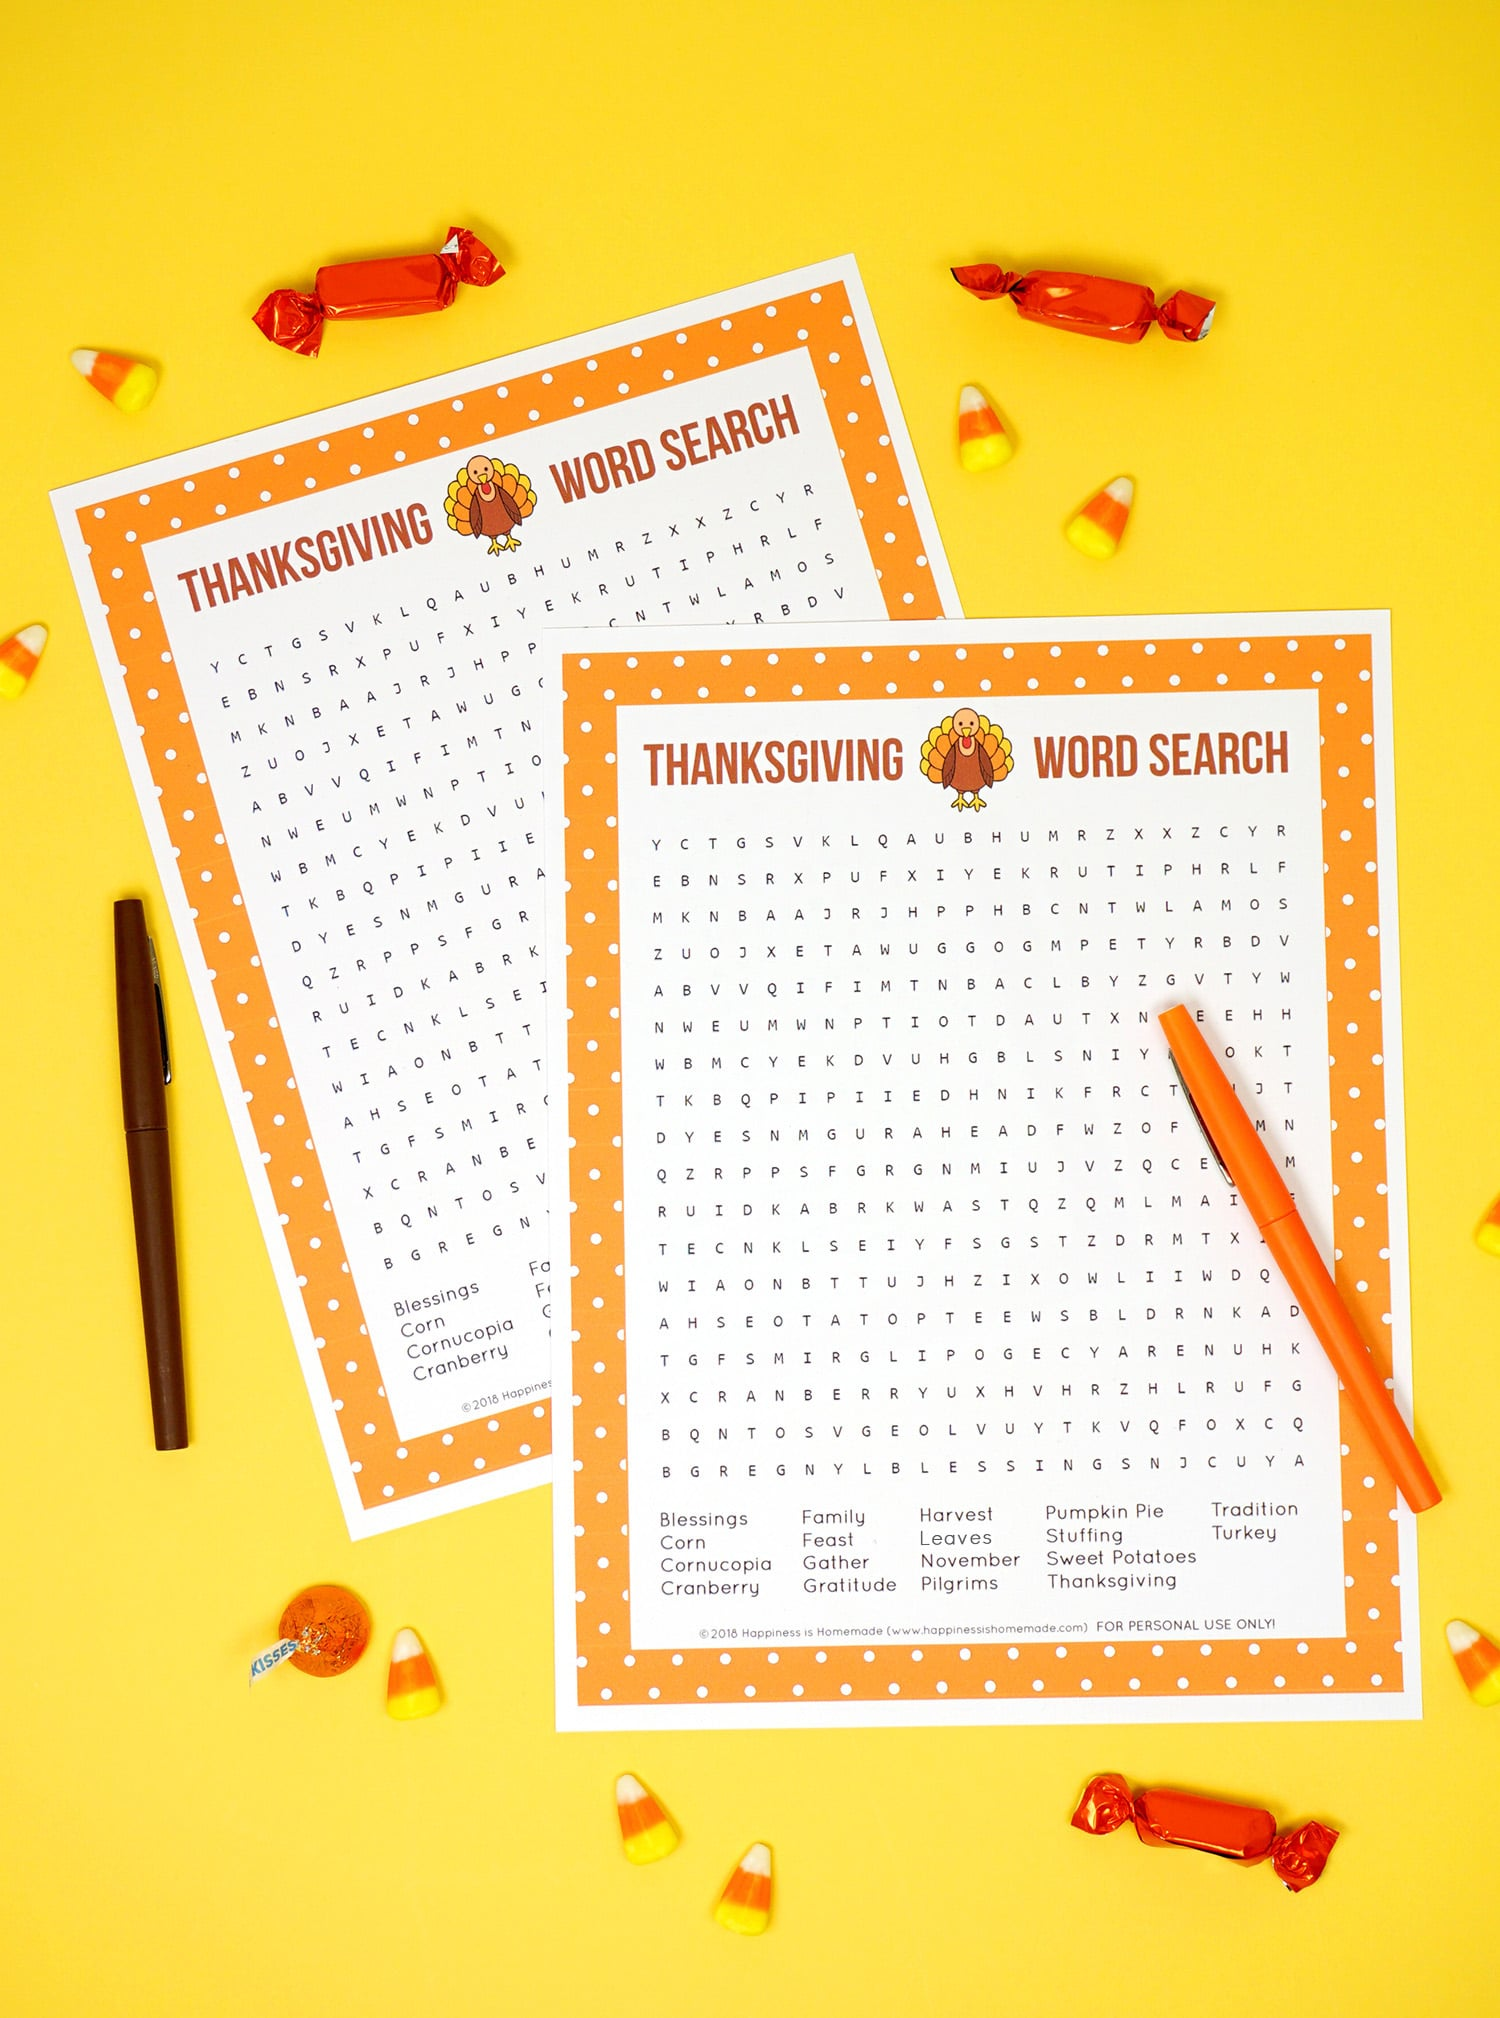 Two Printable Thanksgiving Word Search puzzle games on yellow background with brown & orange pens and candy